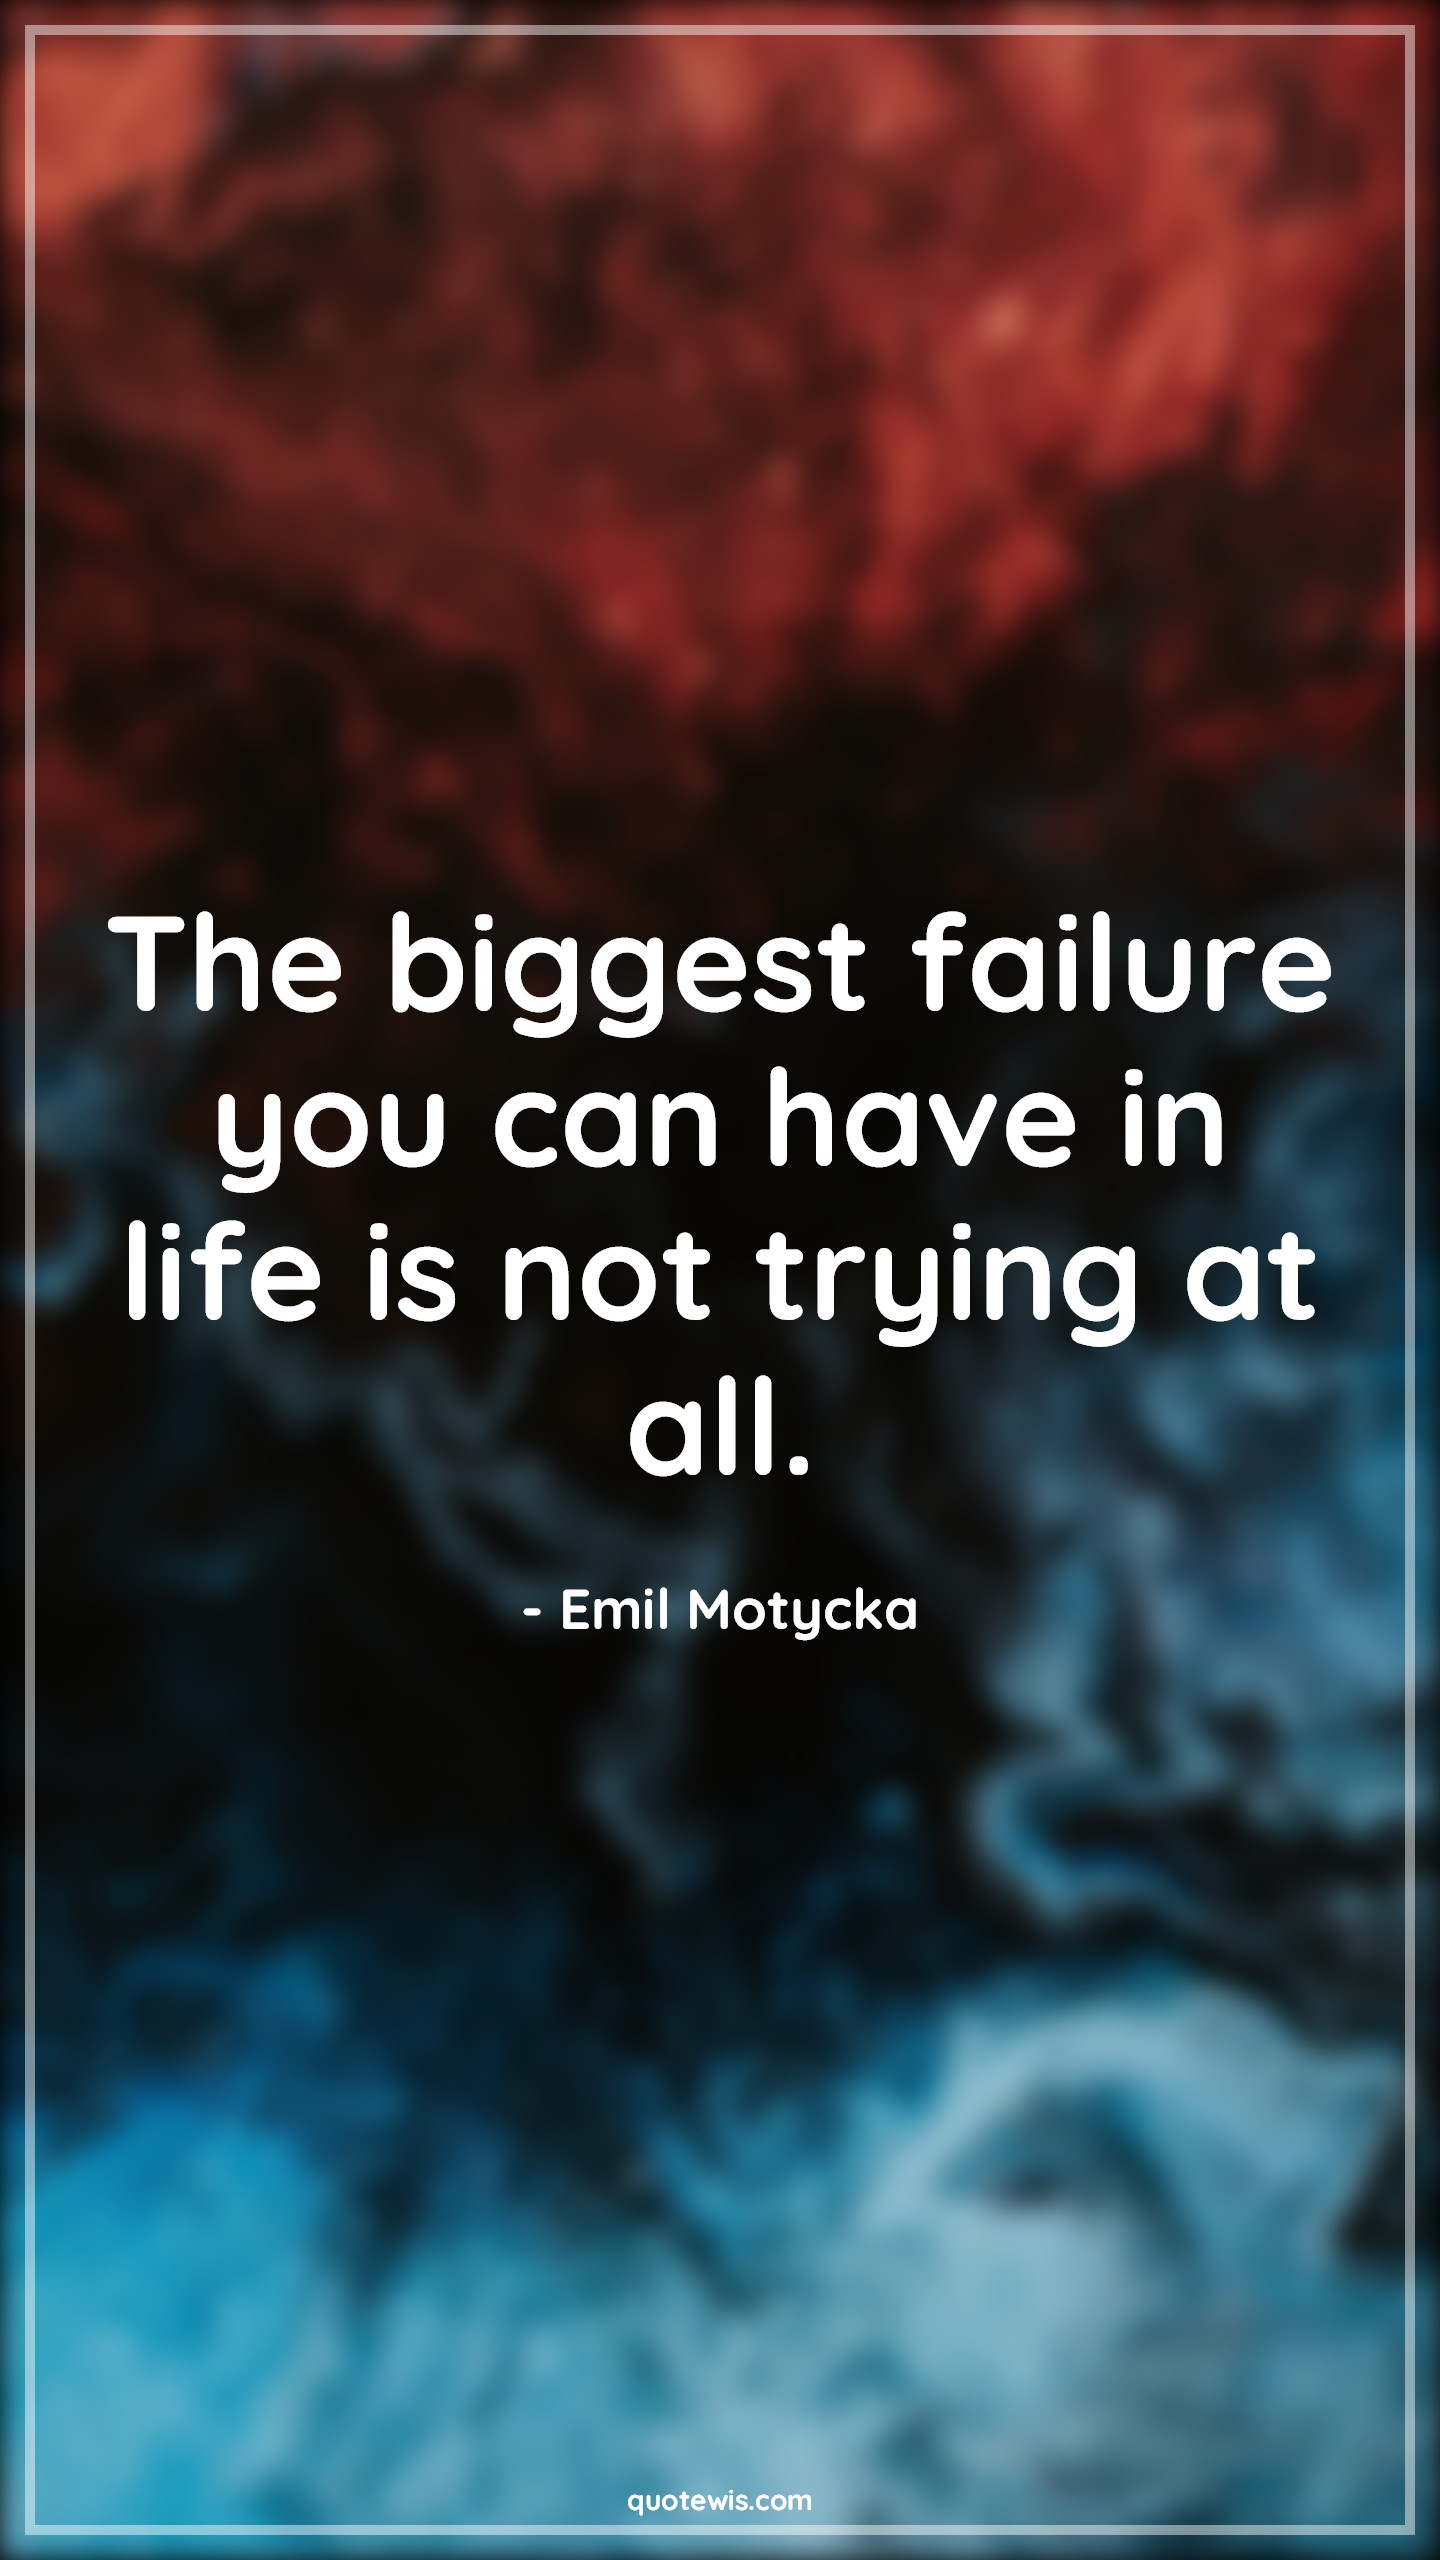 The biggest failure you can have in life is not trying at all.